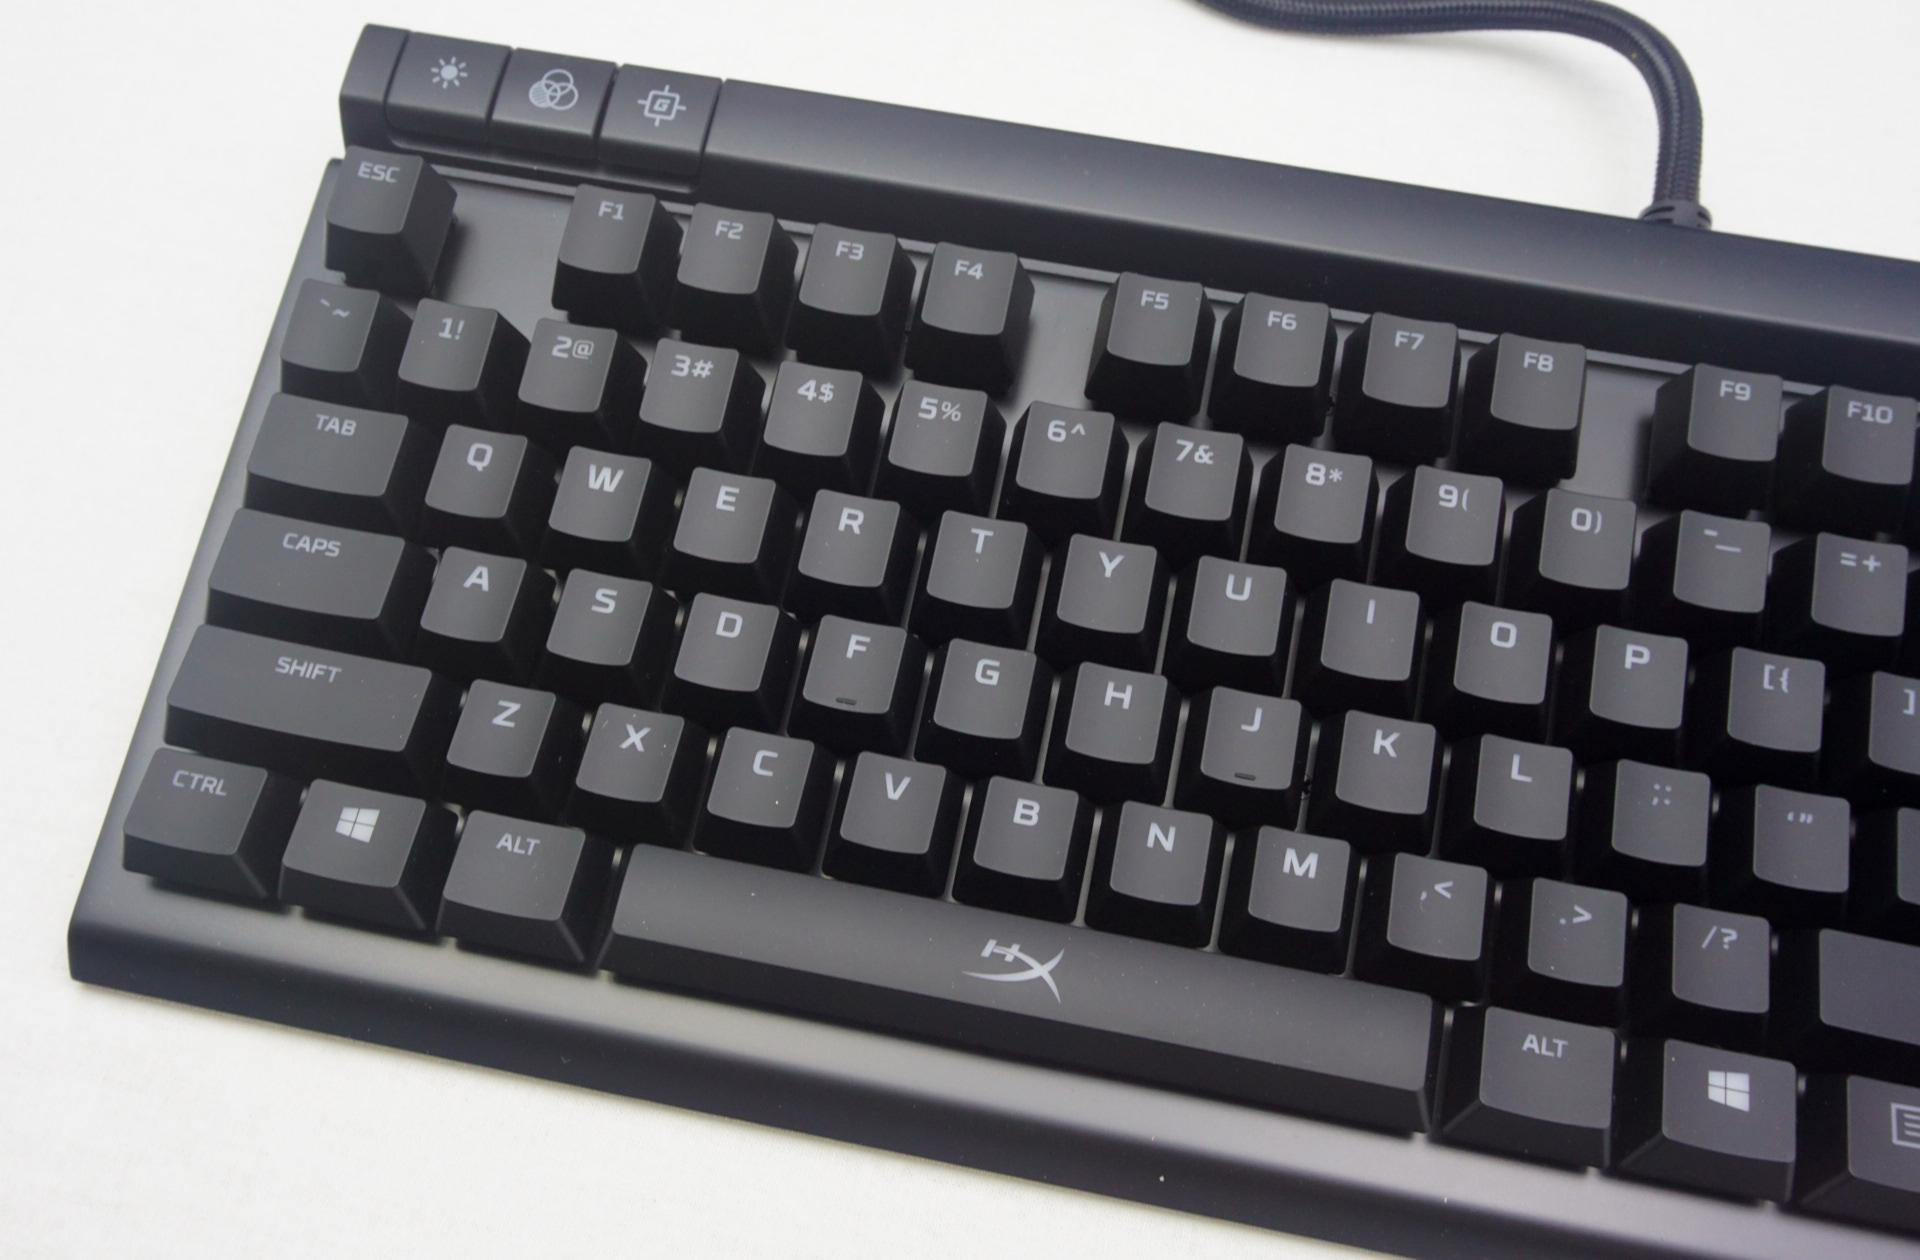 bcb6765844d Rather, it is a straightforward mechanical keyboard with some additional  media keys and a nifty backlighting system.